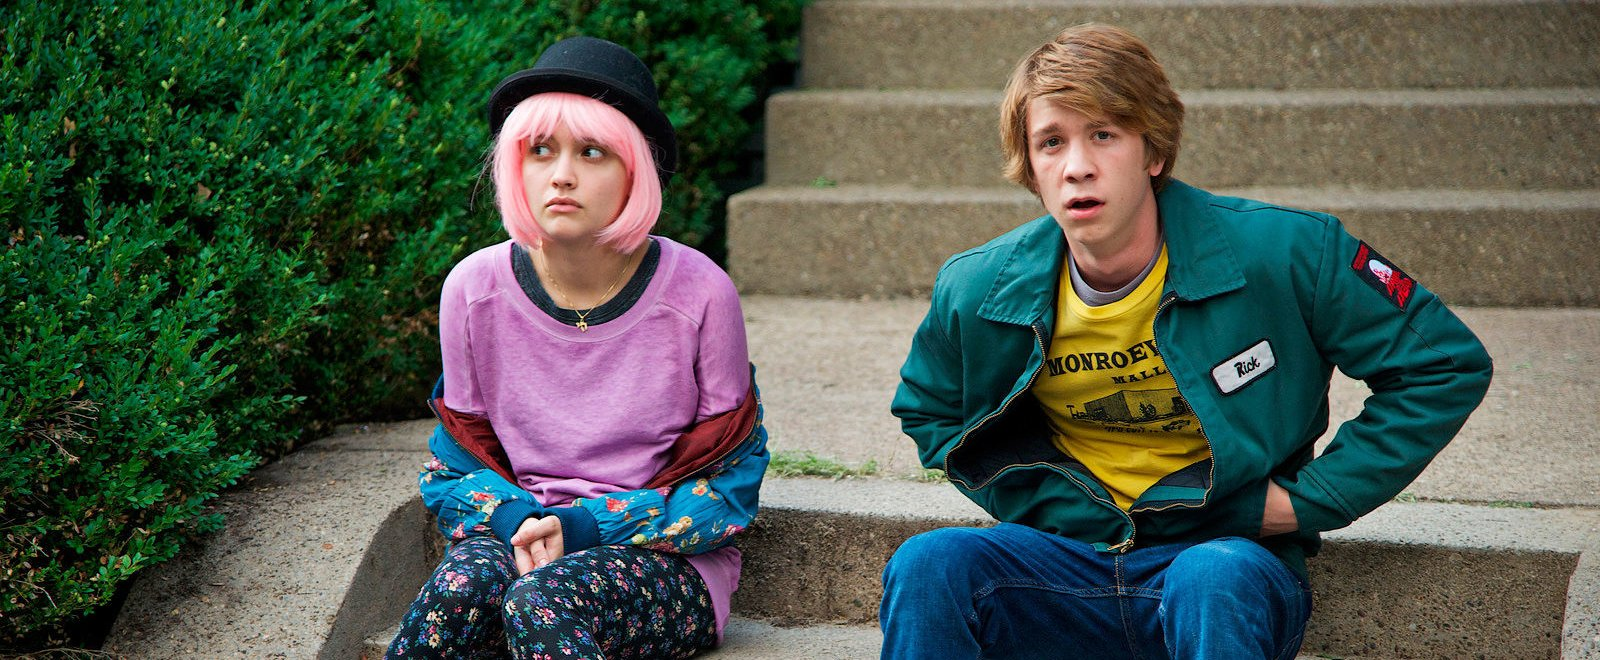 Film: Me and Earl and the Dying Girl feature image